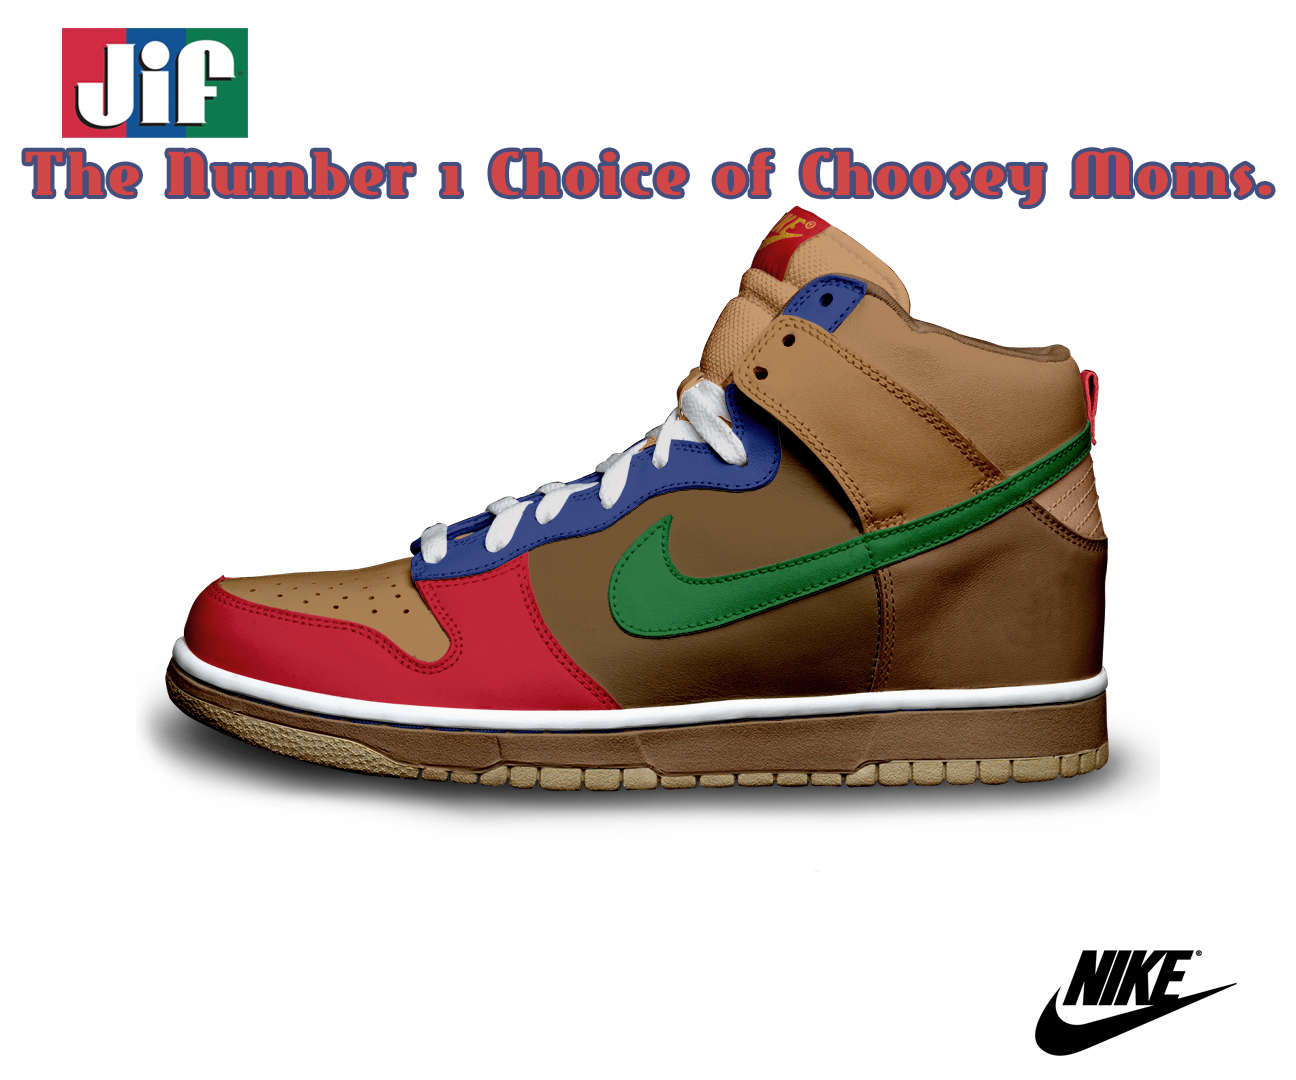 peanutbutter1 Nike x Jif x Smuckers Concepts